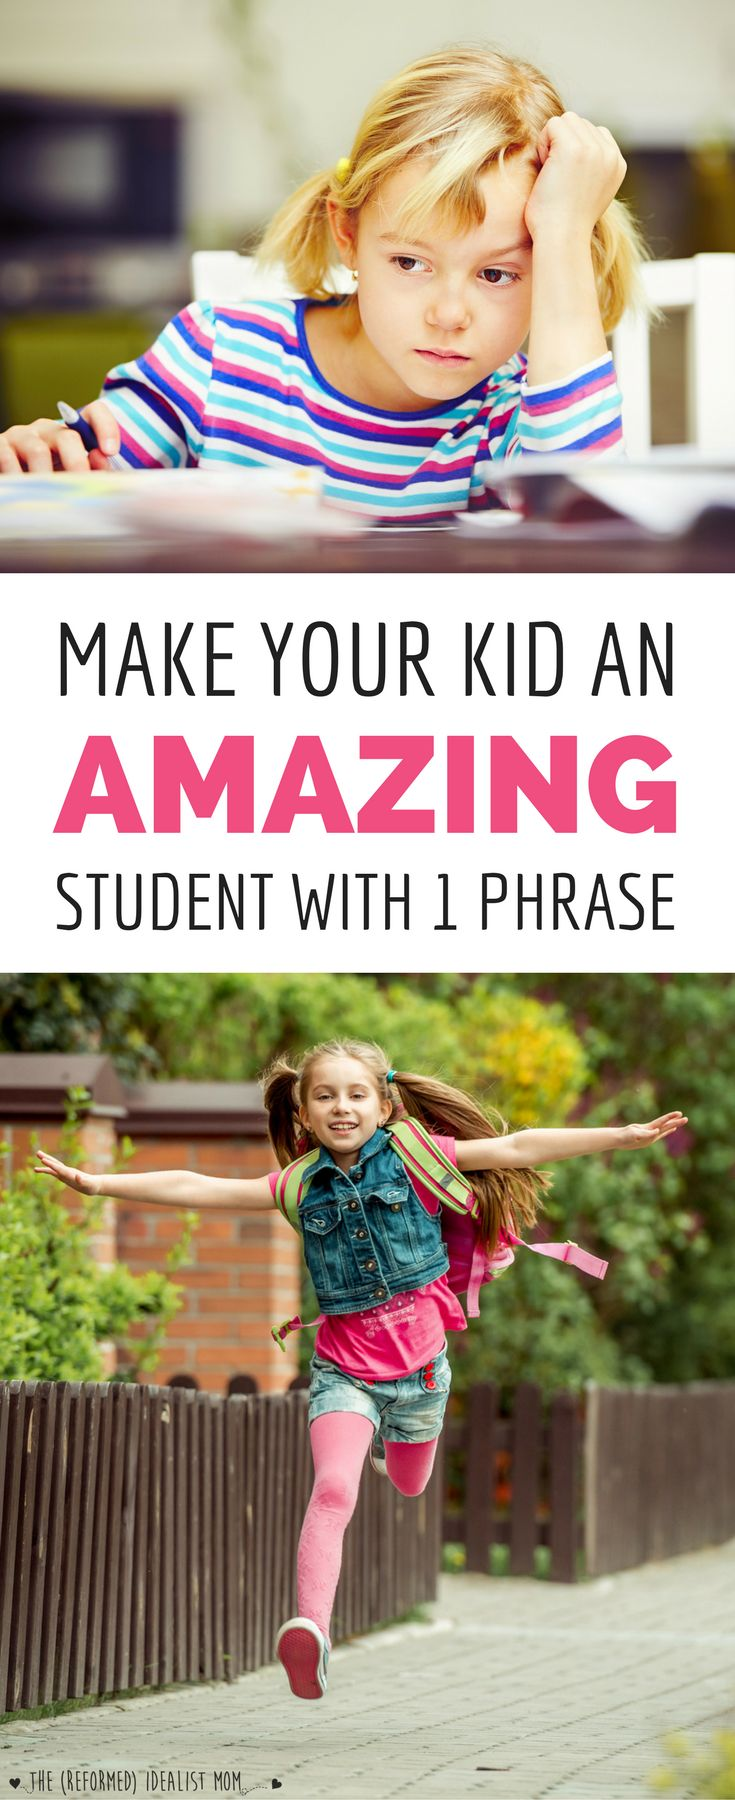 "Turn your kid into a GREAT student with this magic phrase! (Hint: It's NOT ""you're so smart"".) This is such an important tip for parents of kids who struggle with school, give up on homework when it gets too hard, melt down after making mistakes, and more. The perfect way to shift from a fixed mindset to a growth mindset!"